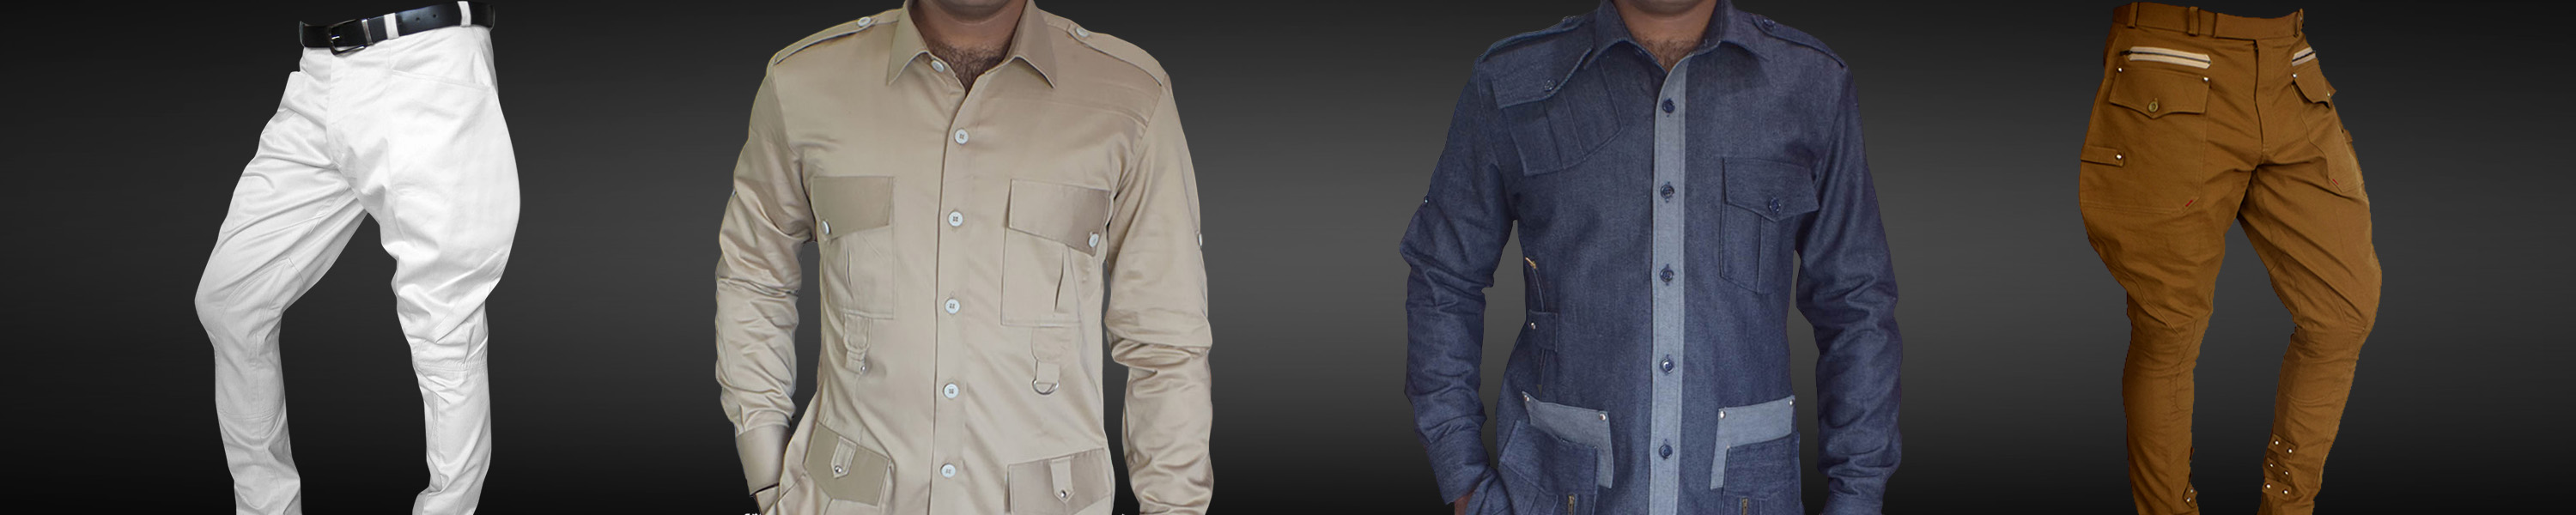 MENS RIDING AND HUNTING OUTFITS